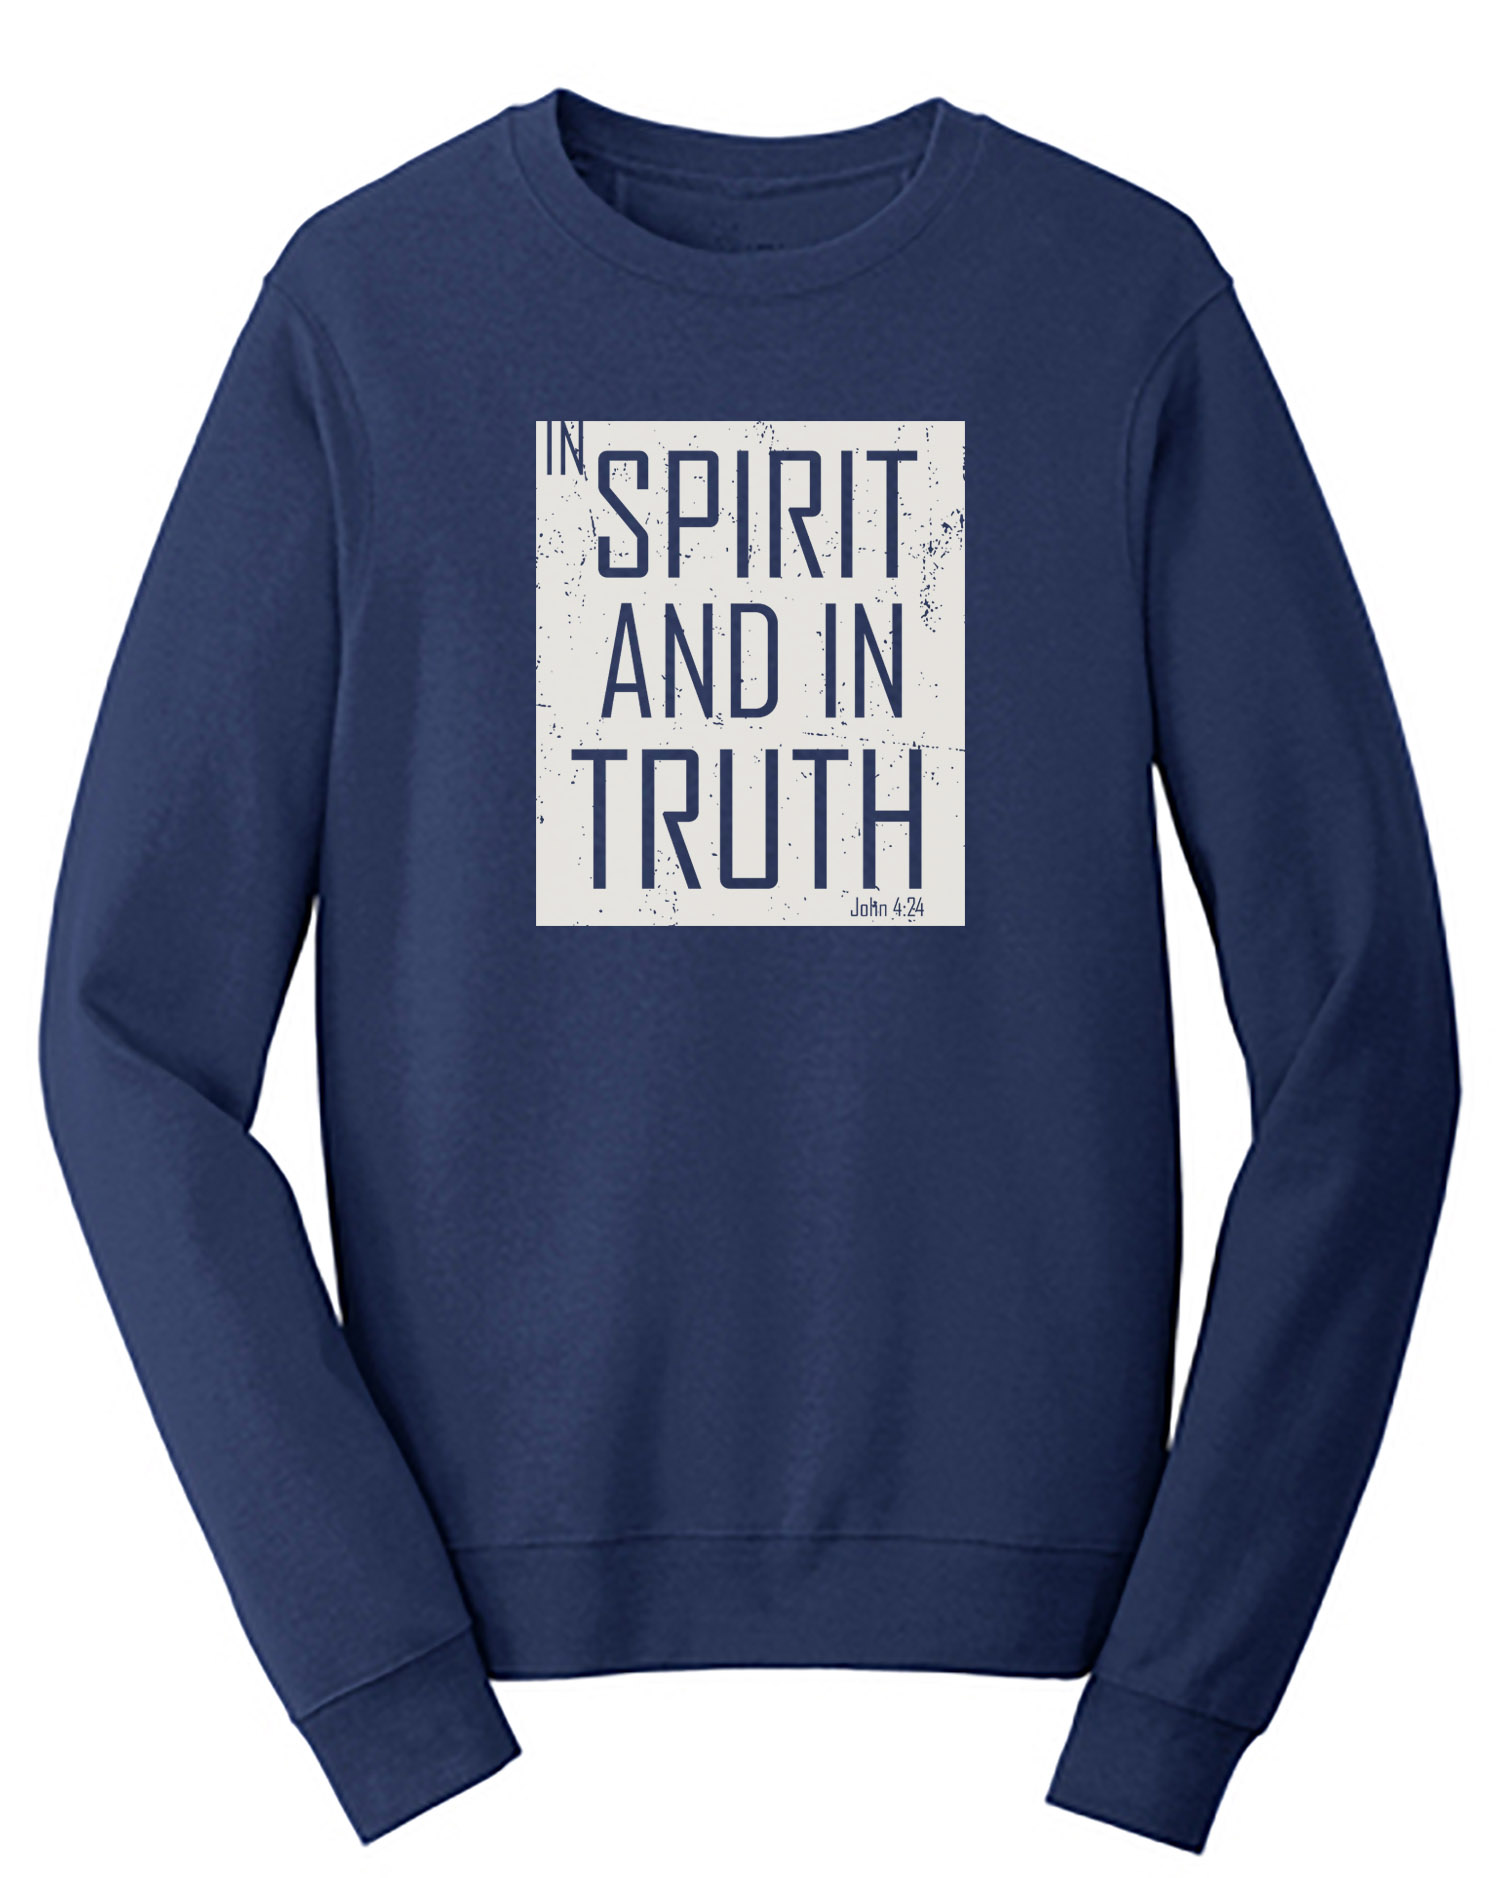 In Spirit and In Truth Sweatshirt